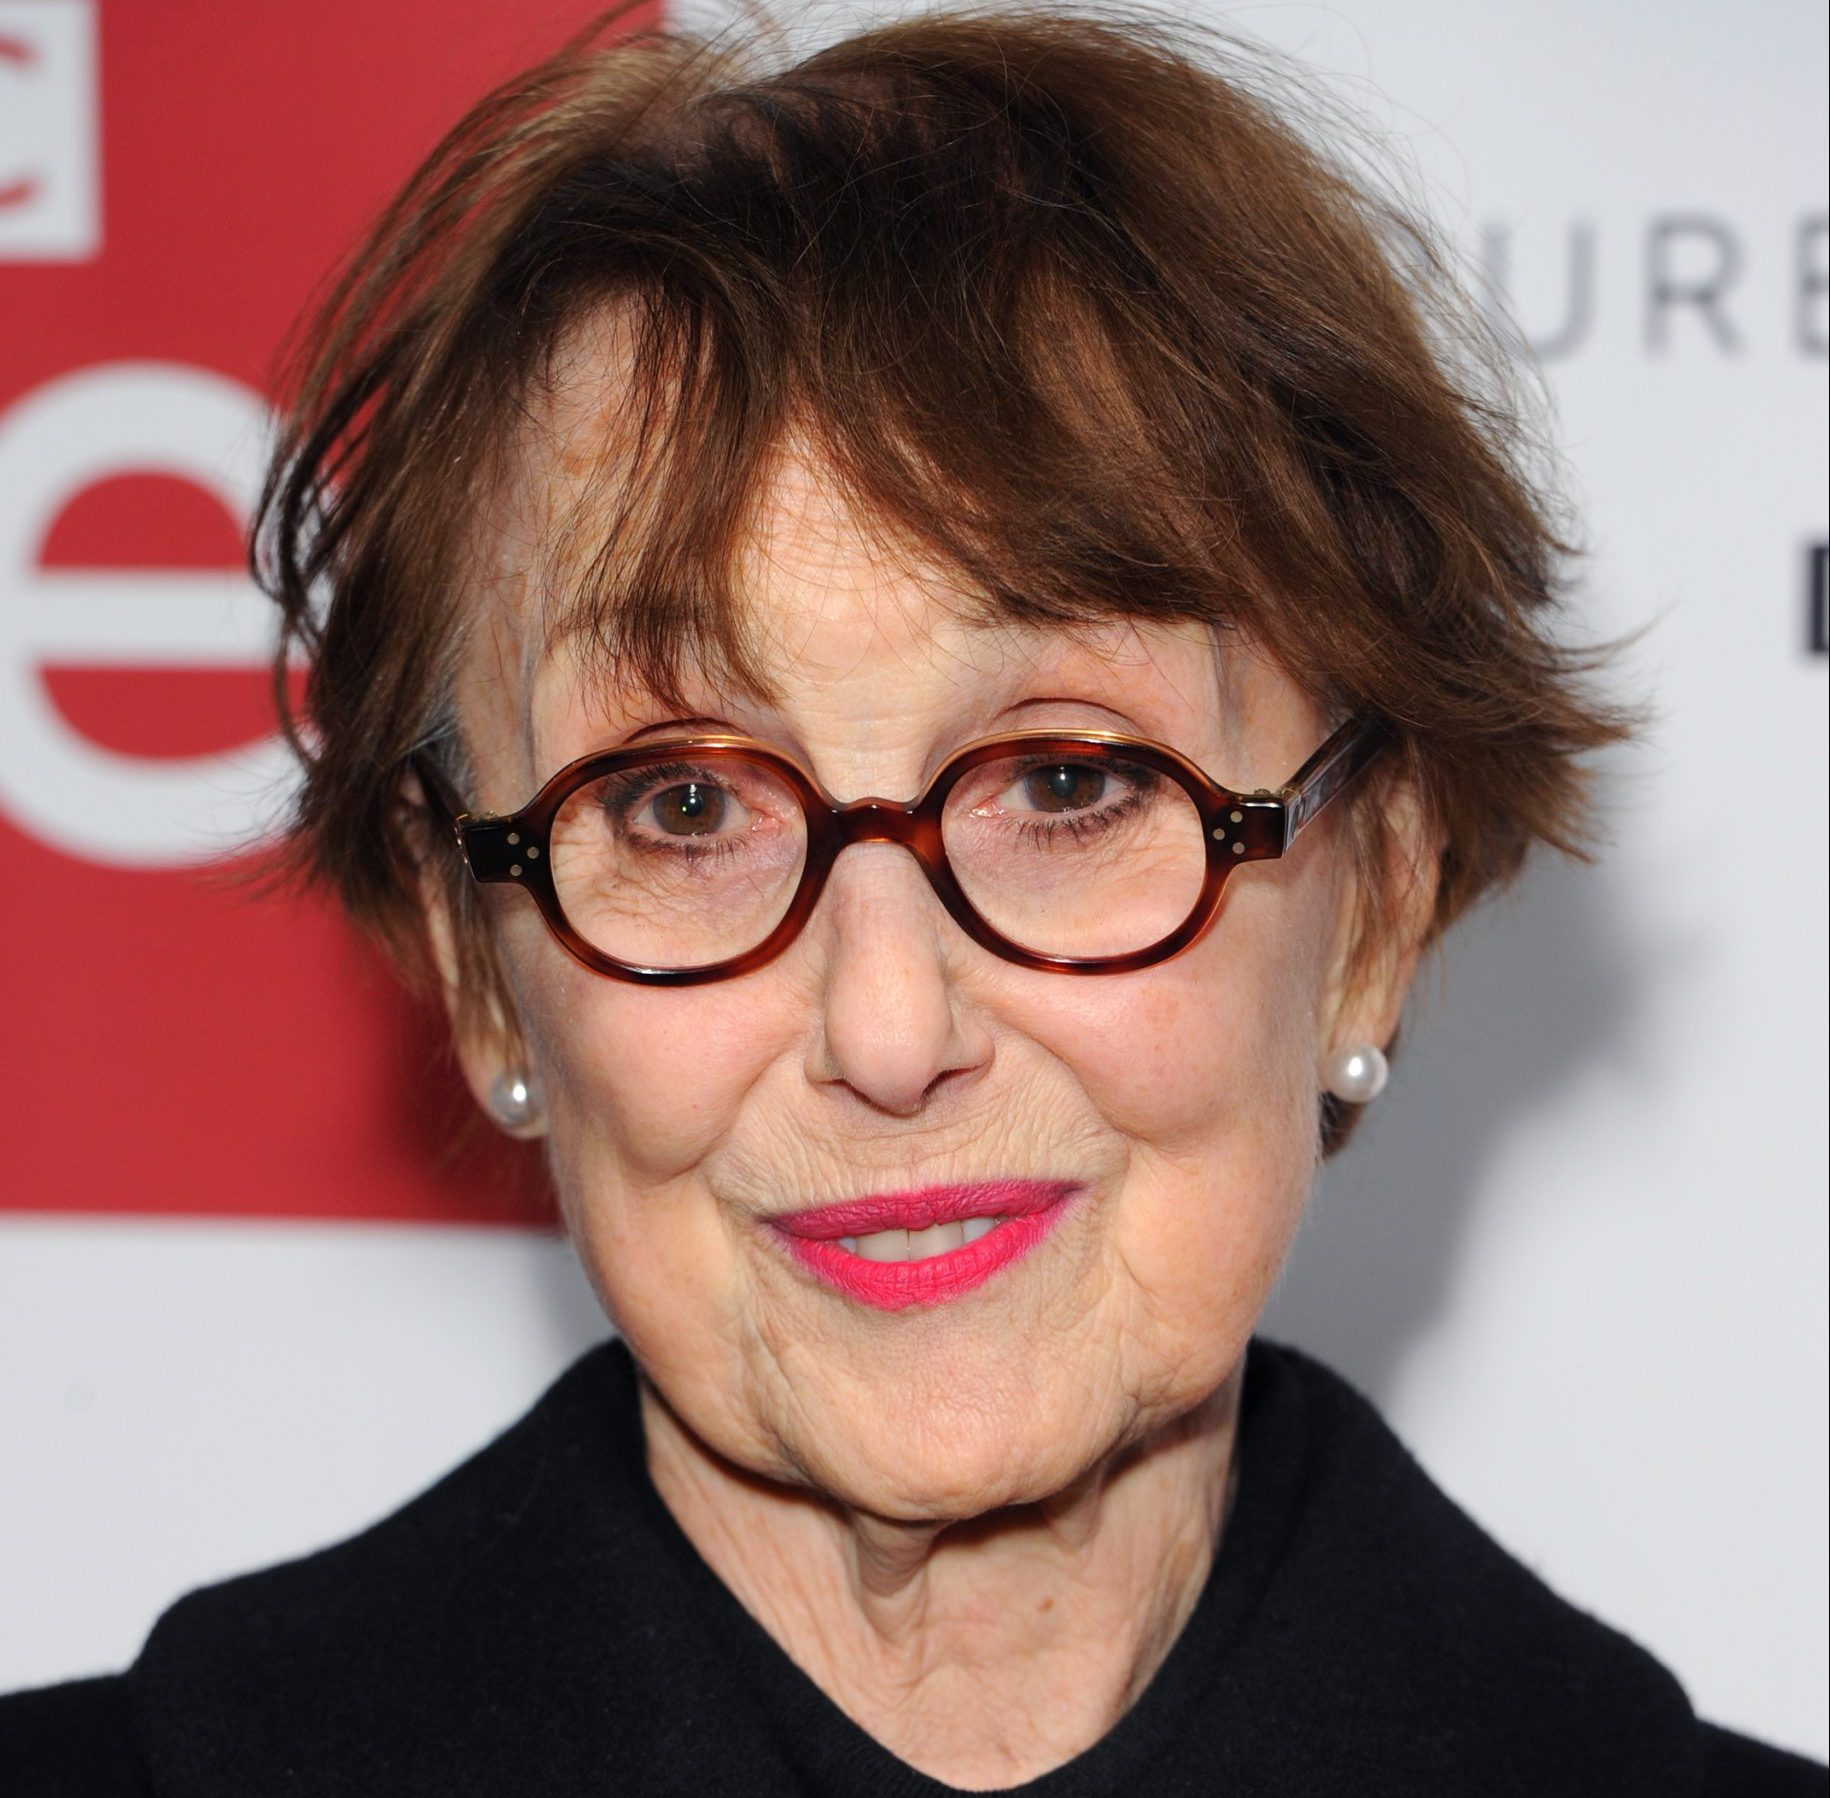 gettyimages 631552962 scaled e1628780013790 British Screen Legend Una Stubbs Dies Aged 84